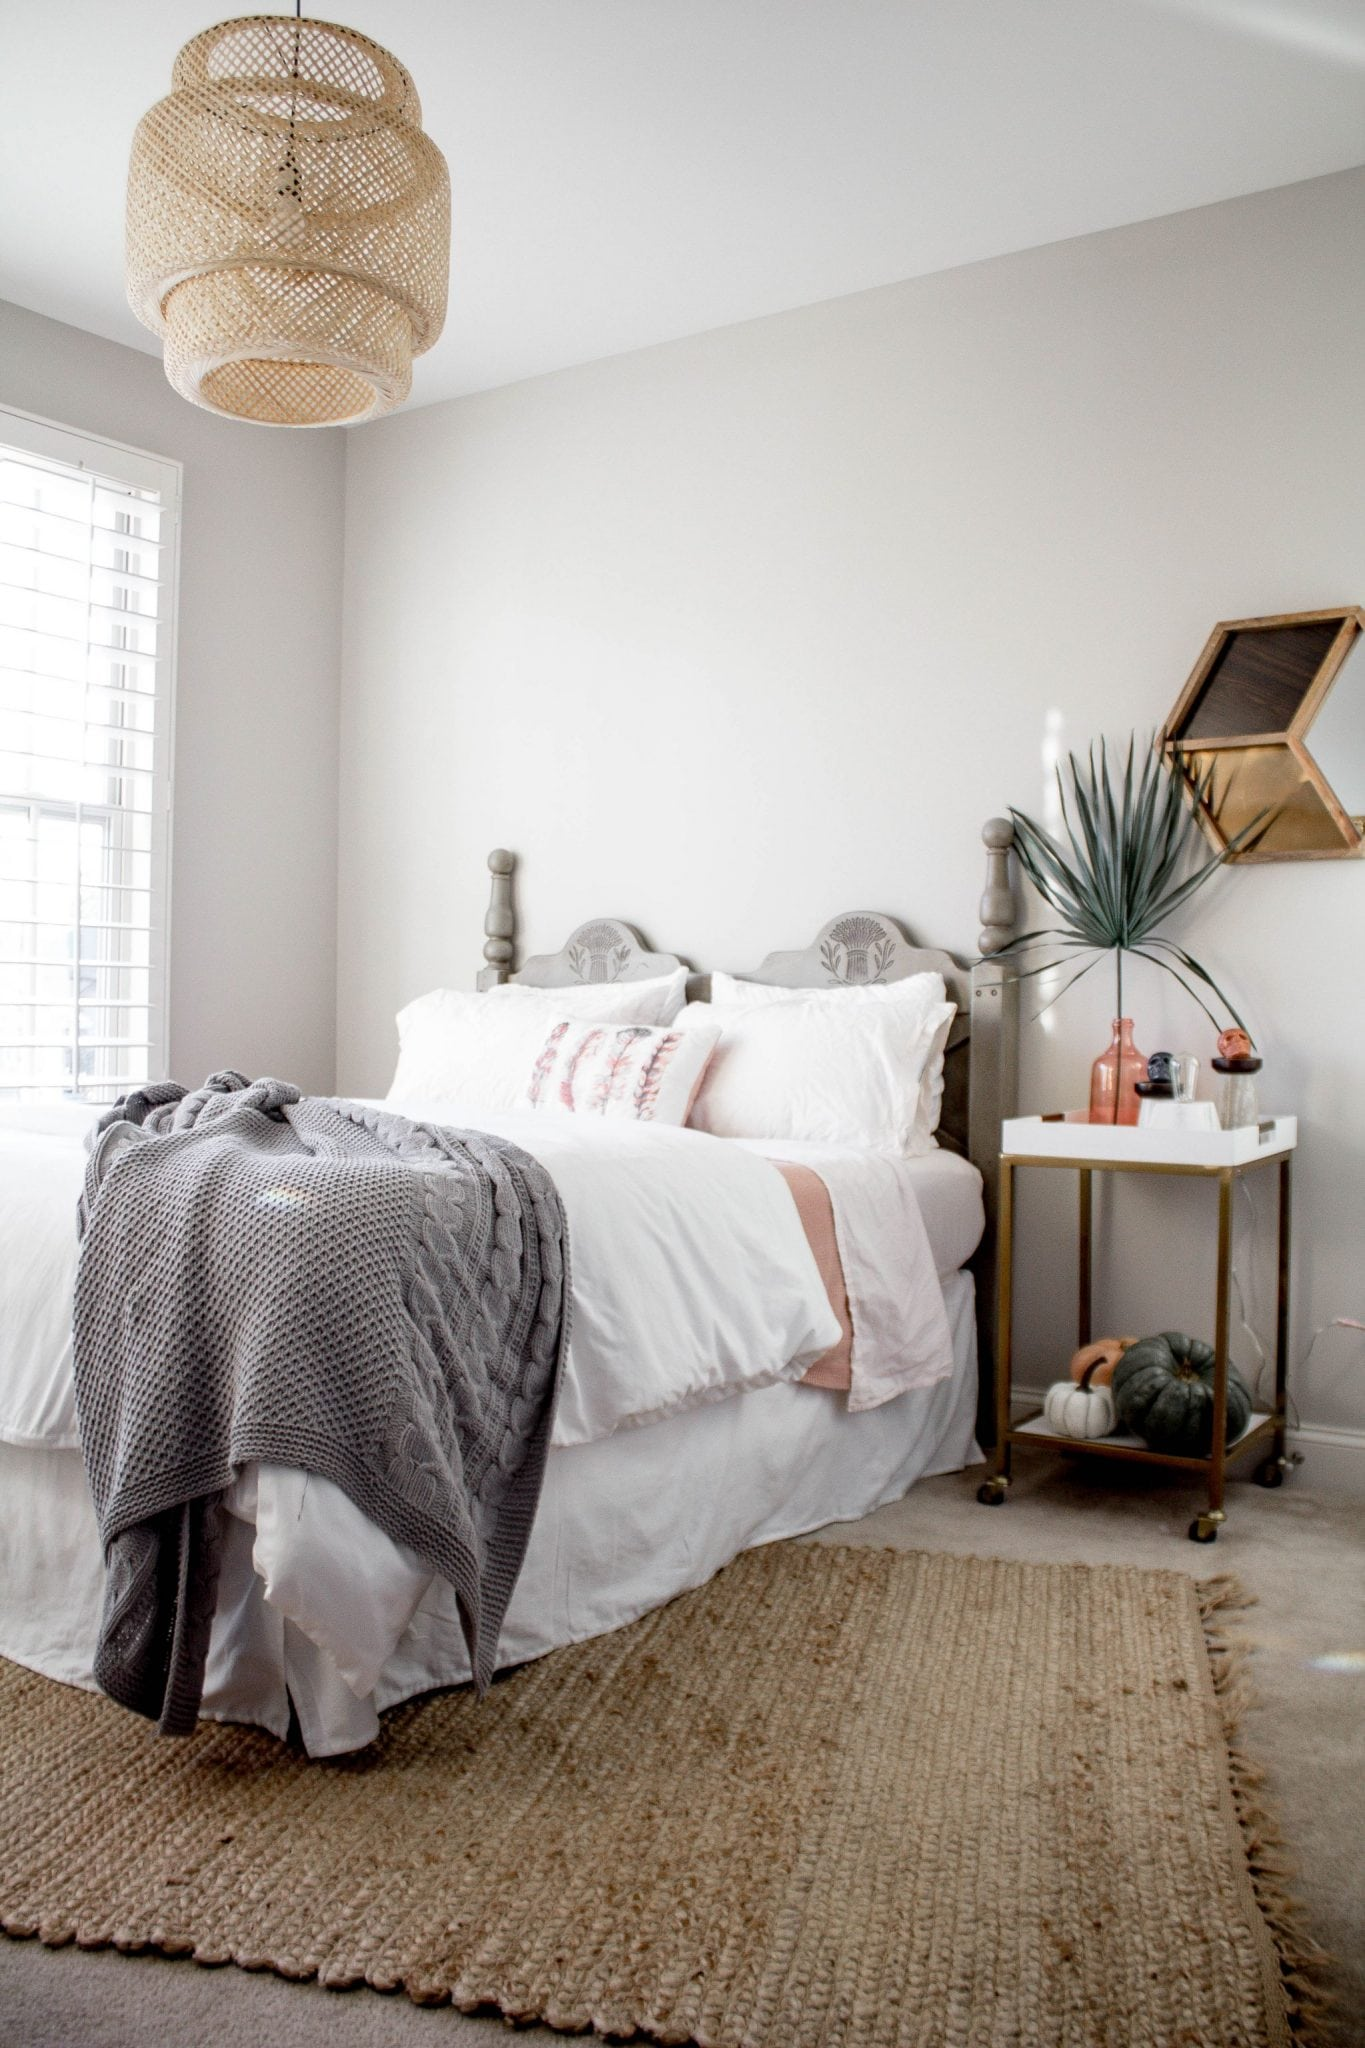 Guest Room Redo on a Budget